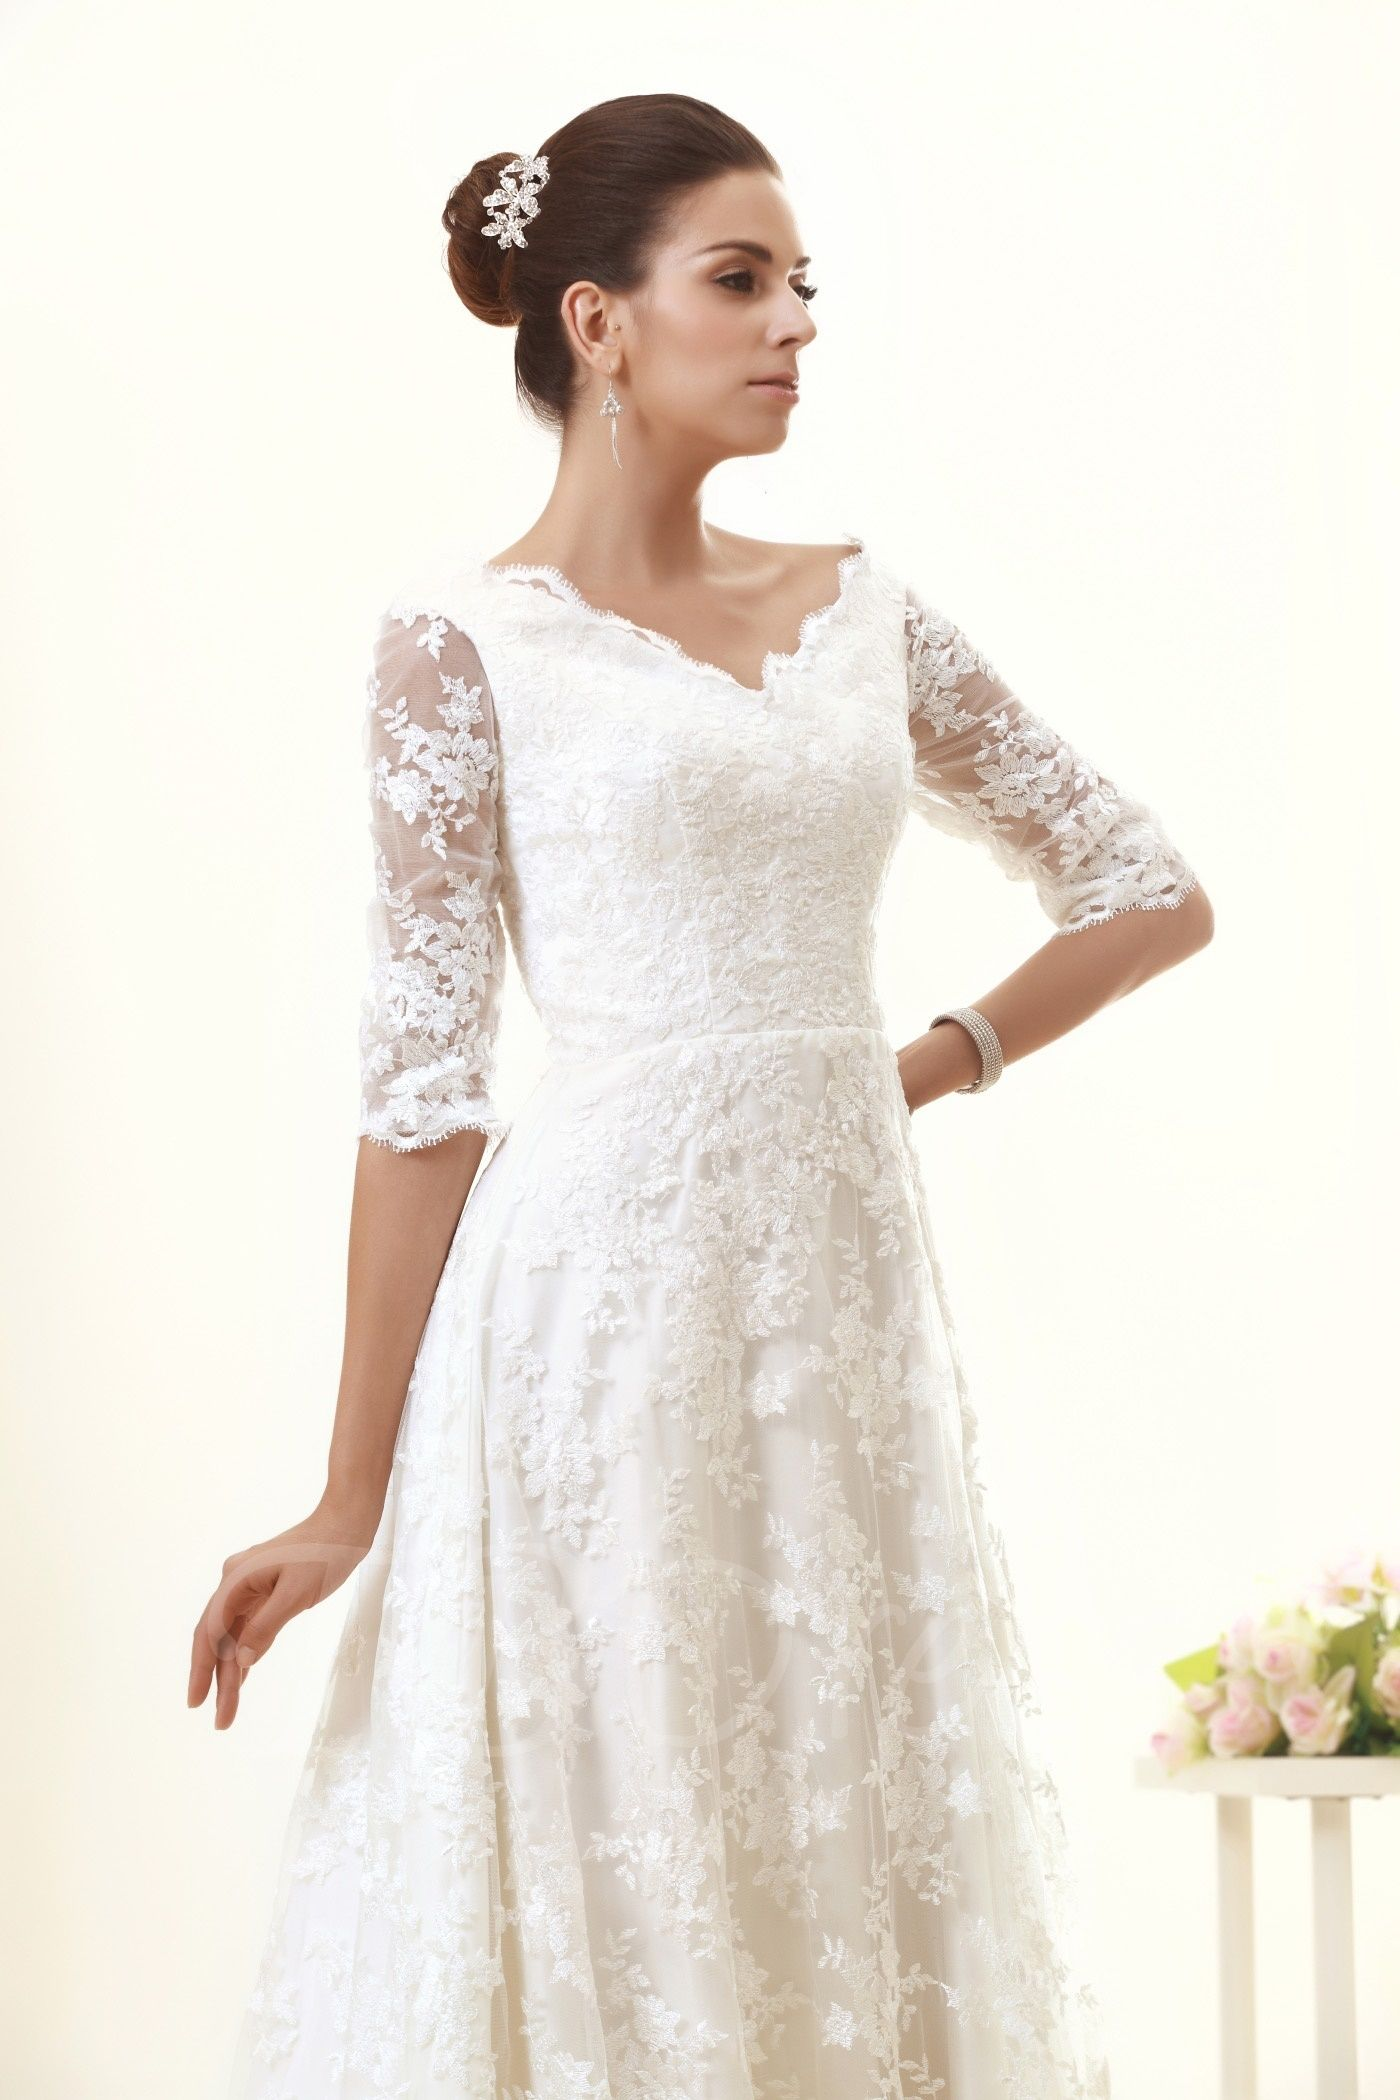 Half sleeves aline lace wedding dress lace wedding dresses lace